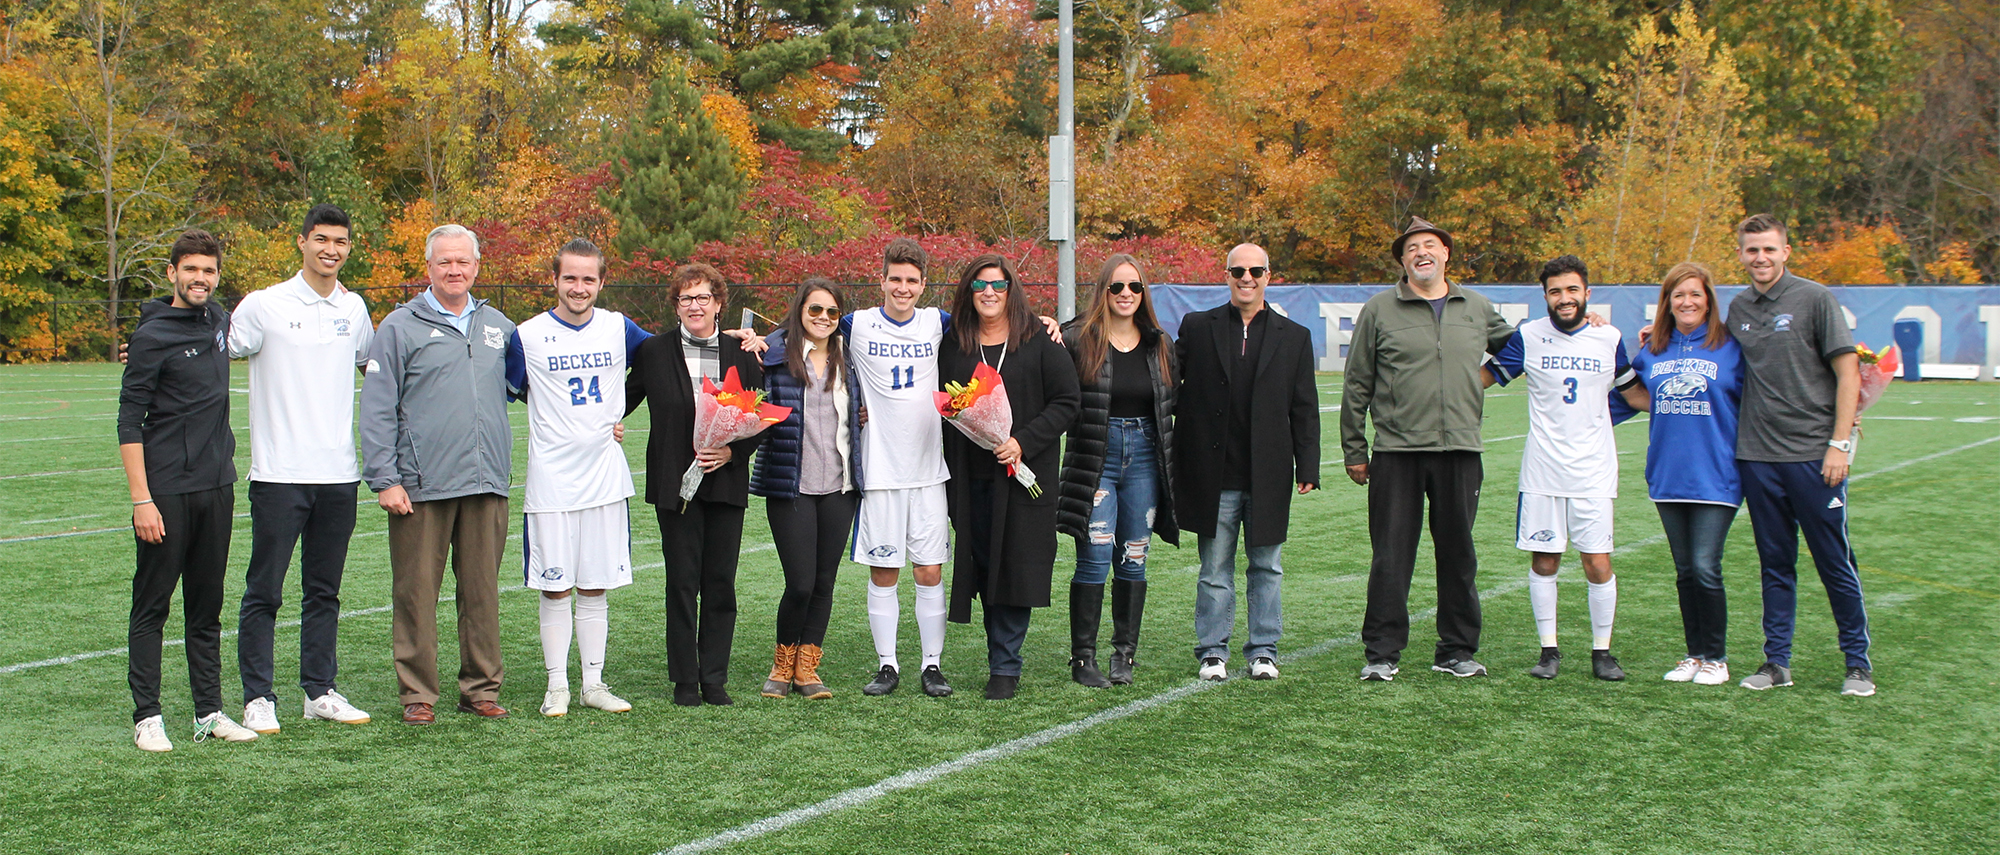 Becker Men's Soccer Senior Day